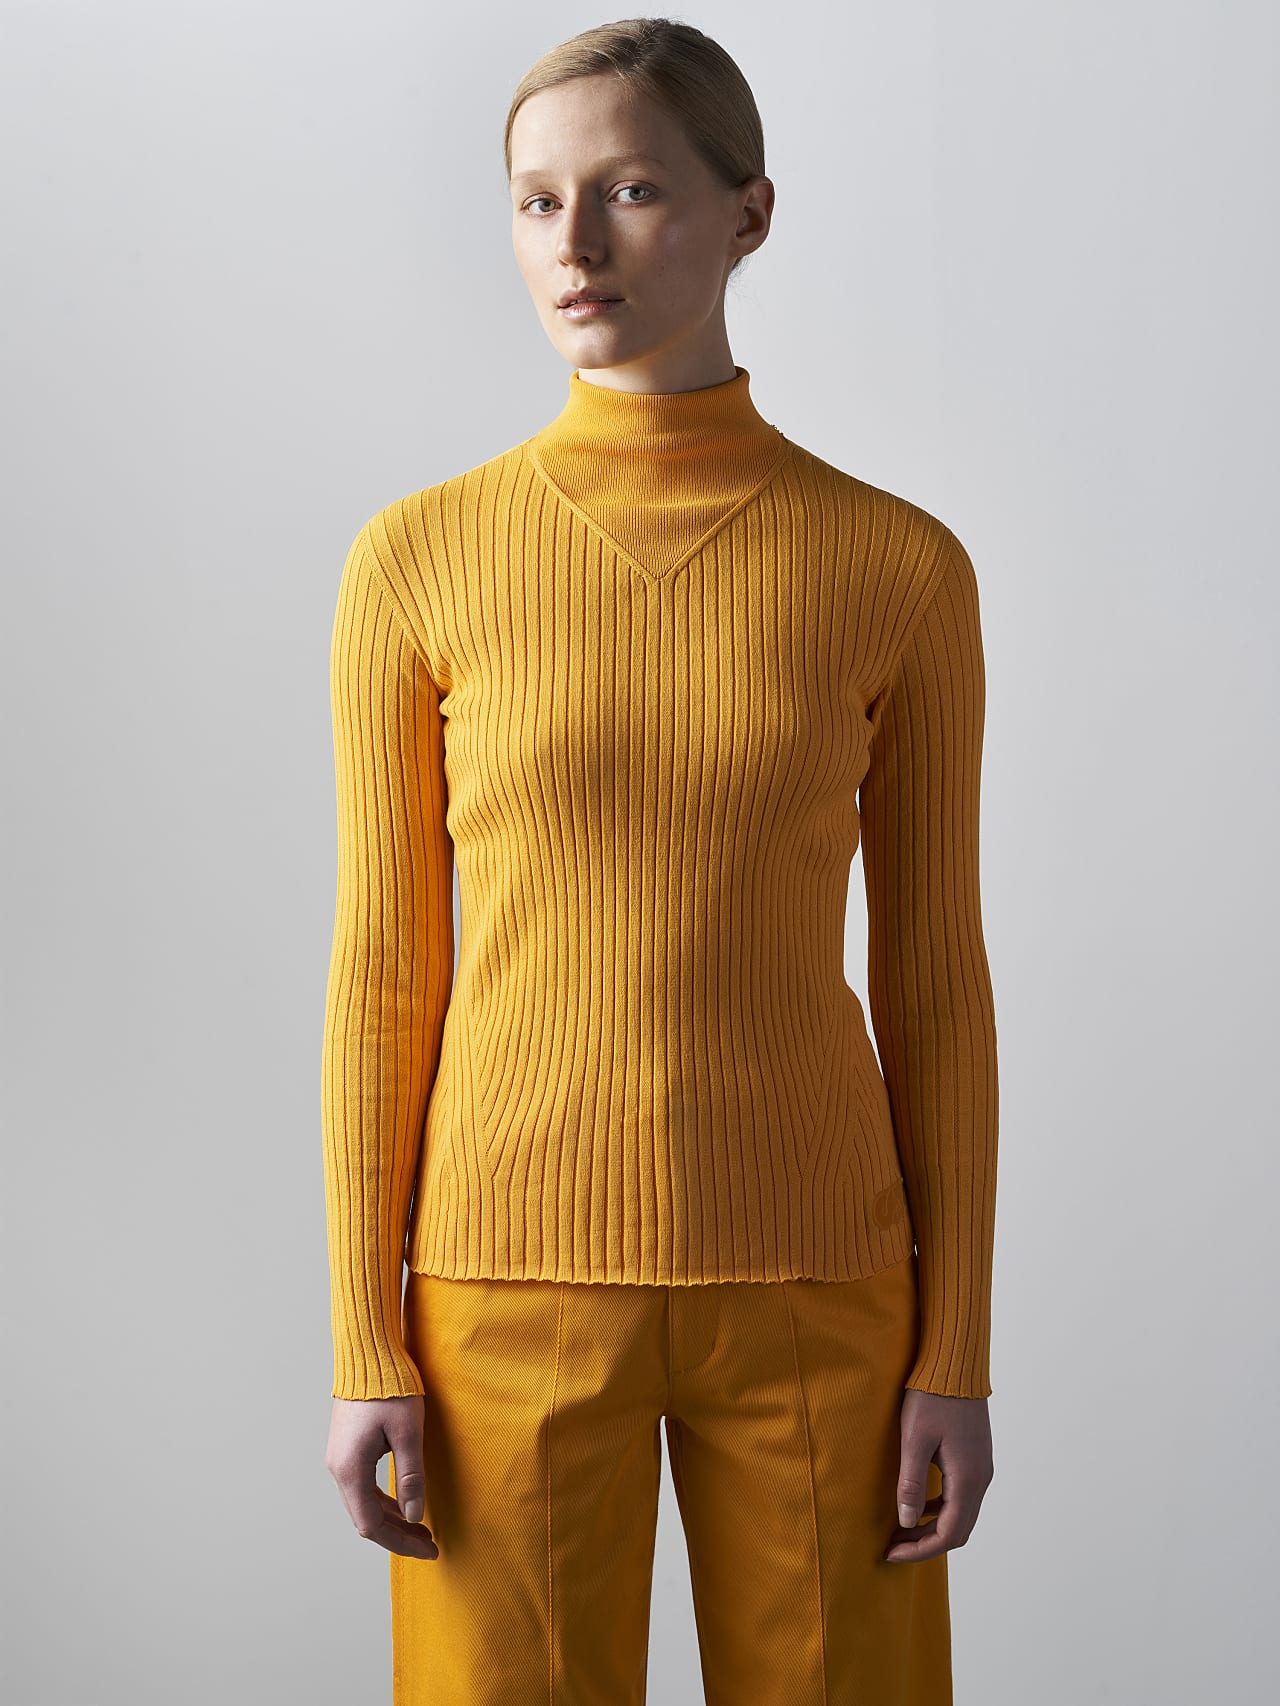 FAXEE V1.Y5.02 Seamless 3D Knit Mock-Neck Jumper yellow Model shot Alpha Tauri